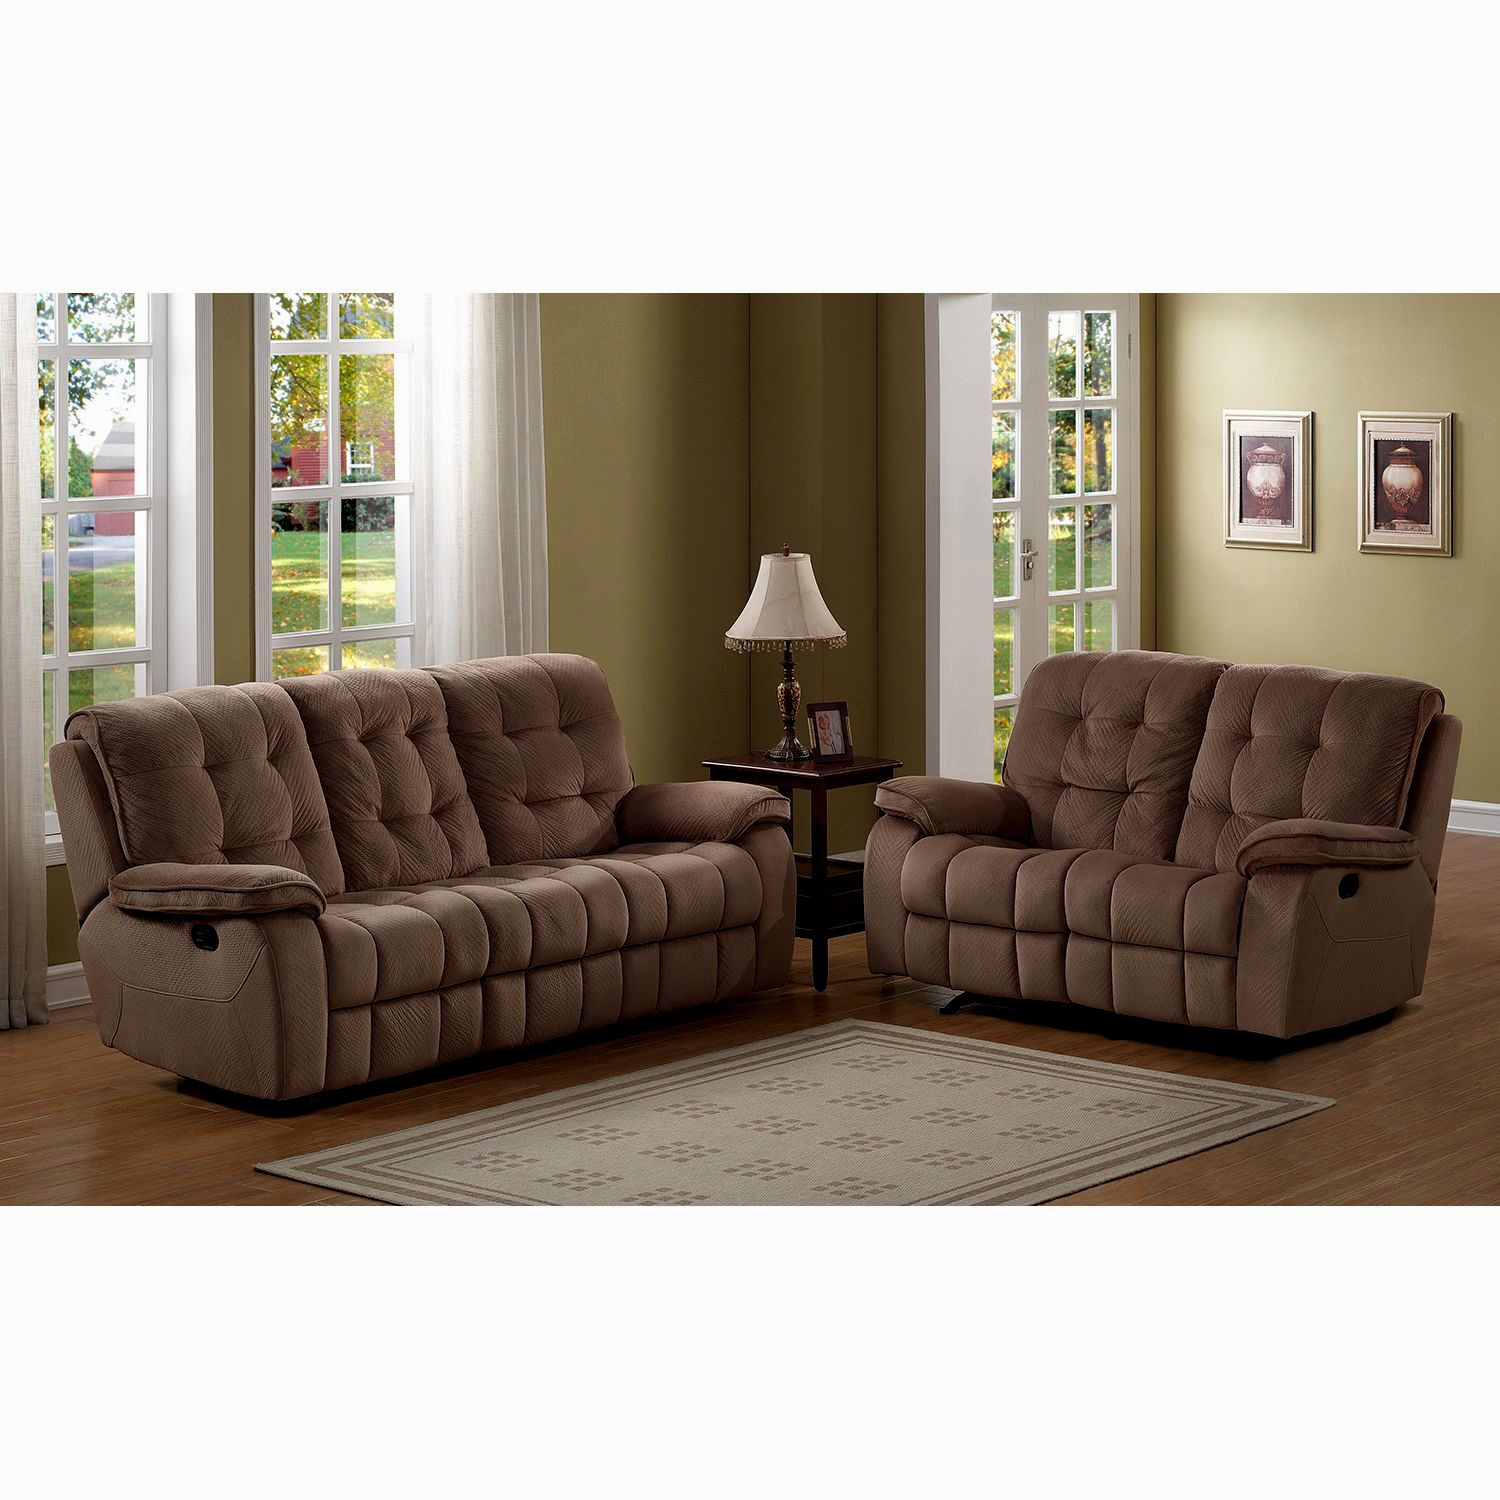 luxury reclining sofa and loveseat decoration-New Reclining sofa and Loveseat Pattern